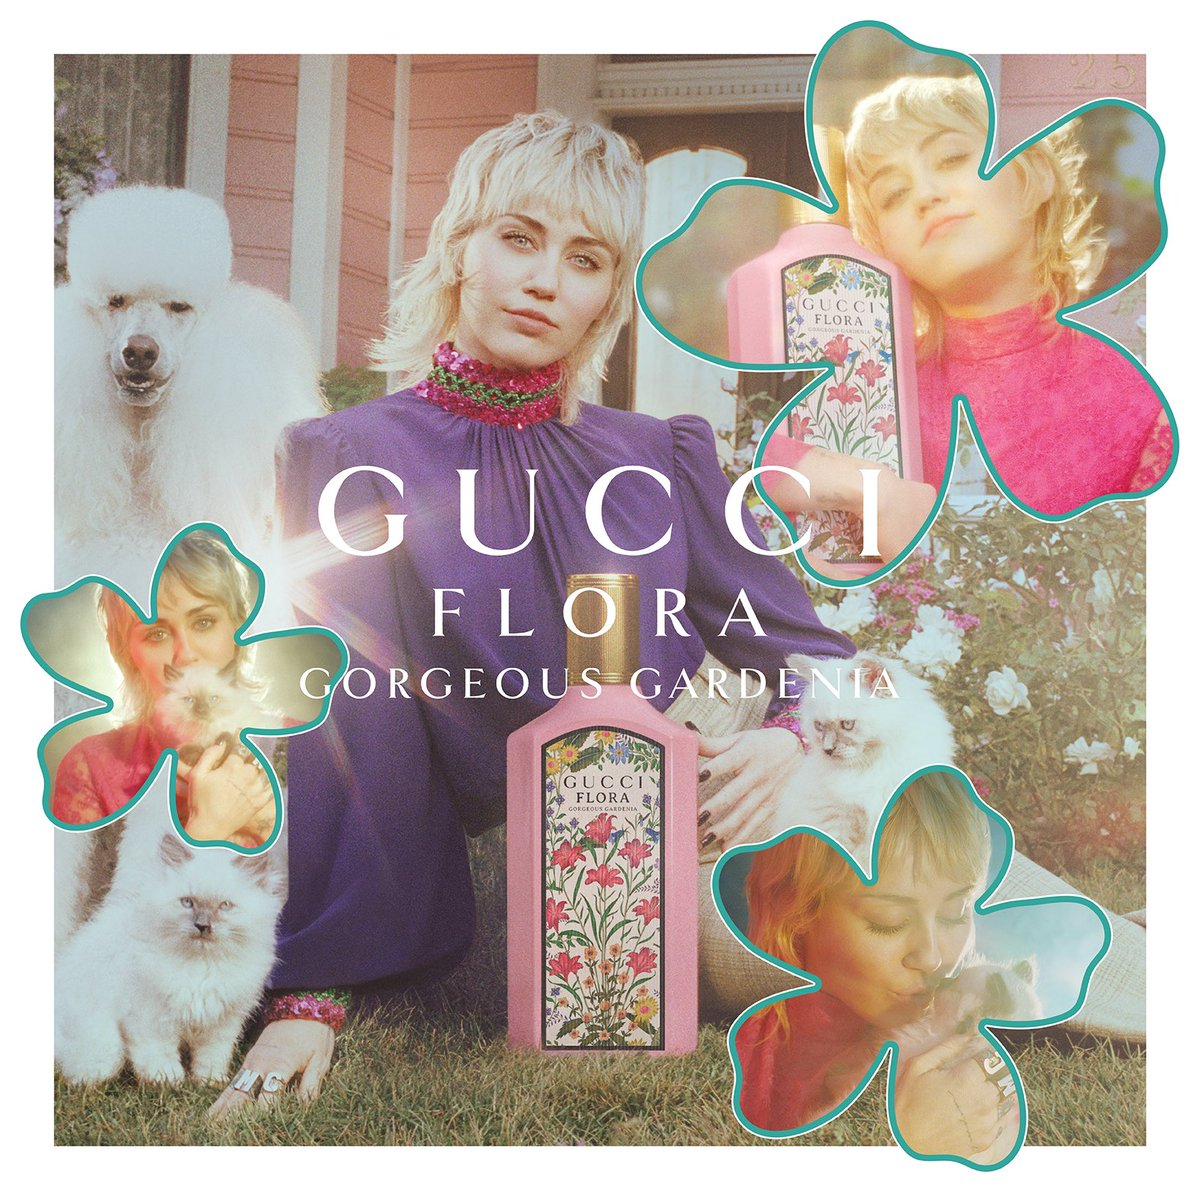 The time has come! So happy to show you Gucci Flora Gorgeous Gardenia's fanciful world! #FloraFantasy @GucciBeauty https://t.co/AhcbzvuujO